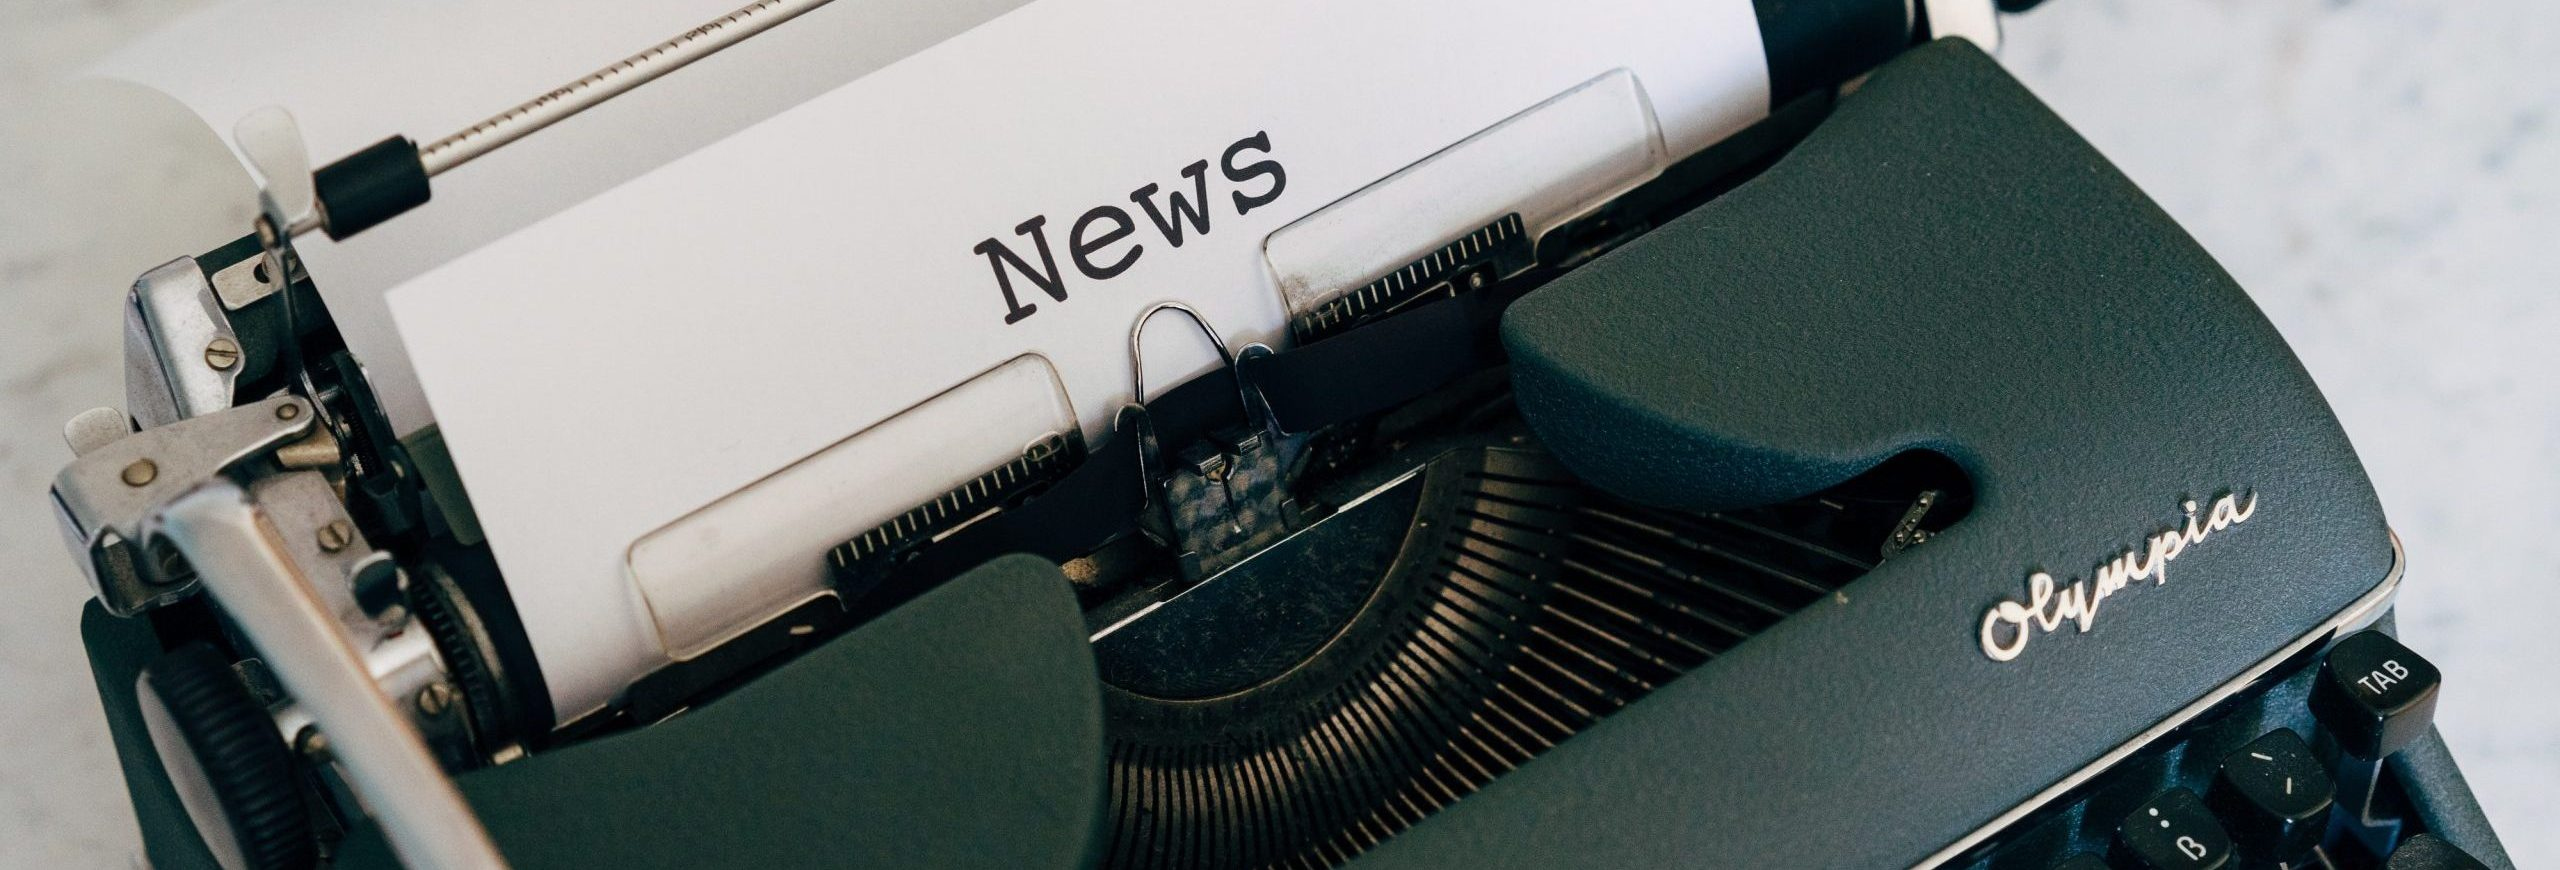 typewriter with paper and word news on it